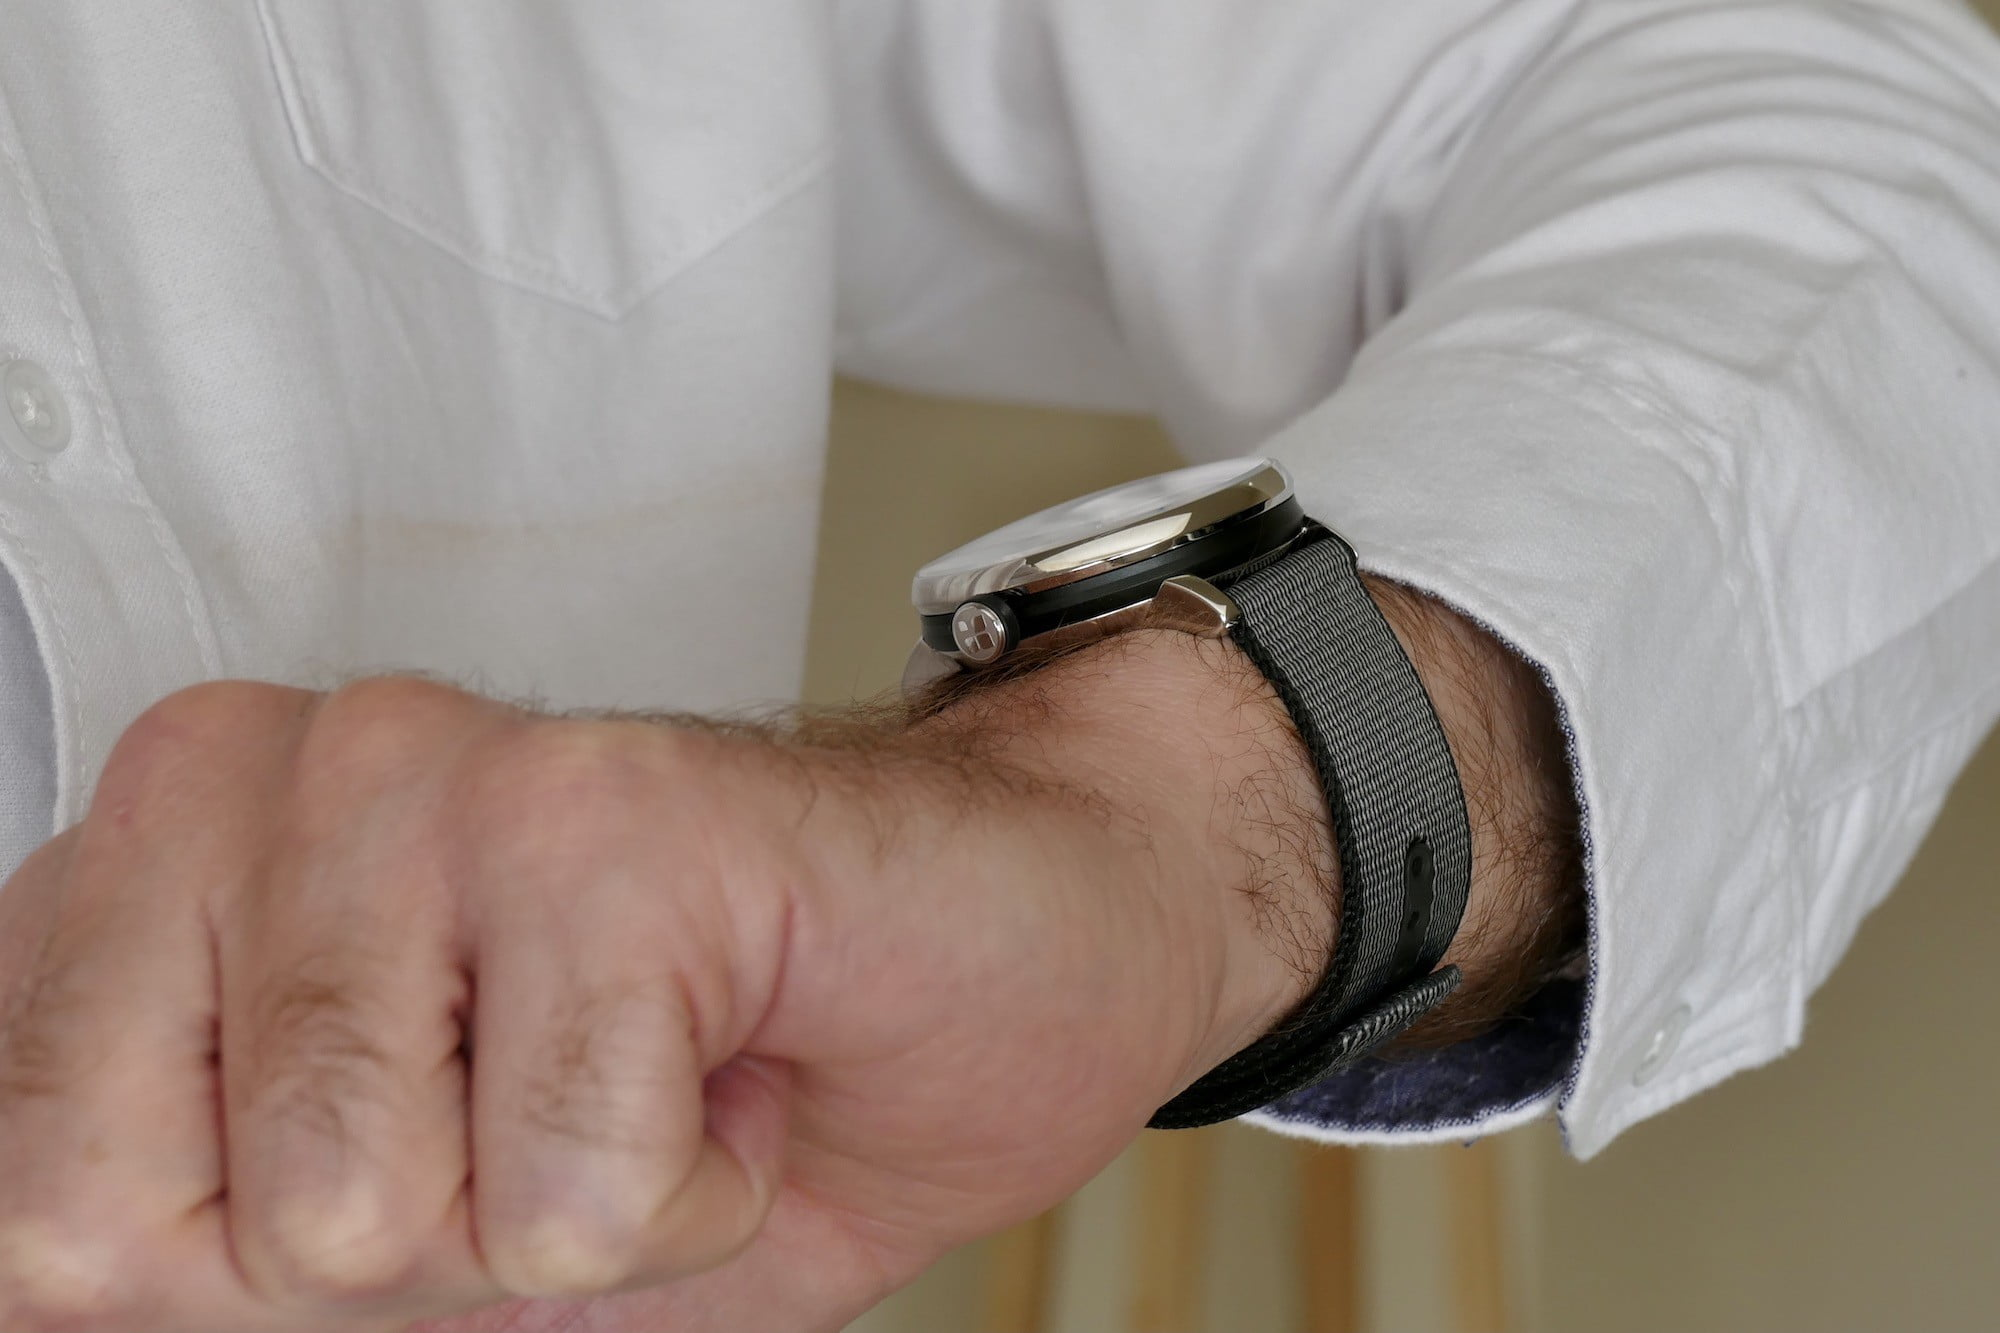 Sequent SuperCharger watch on the wrist showing the side.